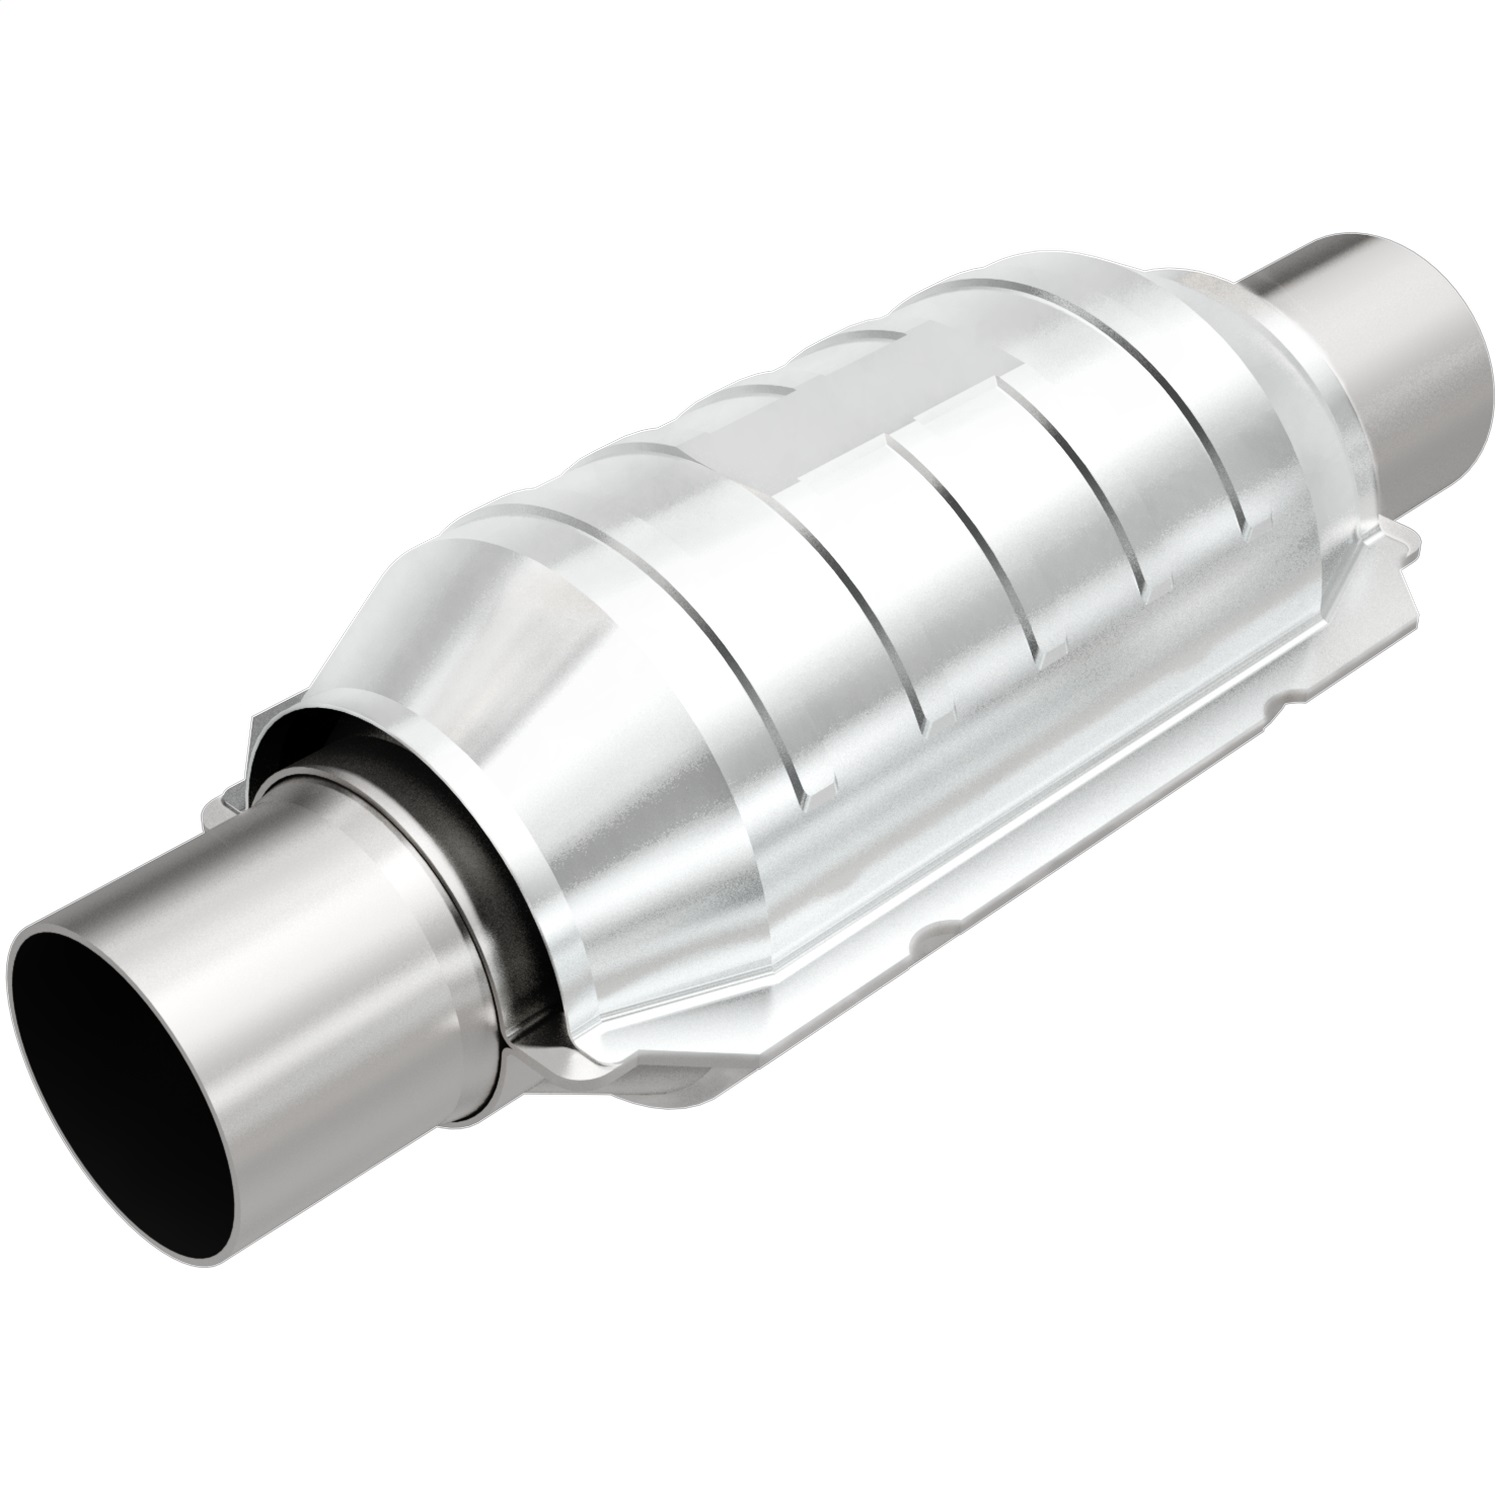 MagnaFlow Exhaust Products Catalytic Converter (454204)